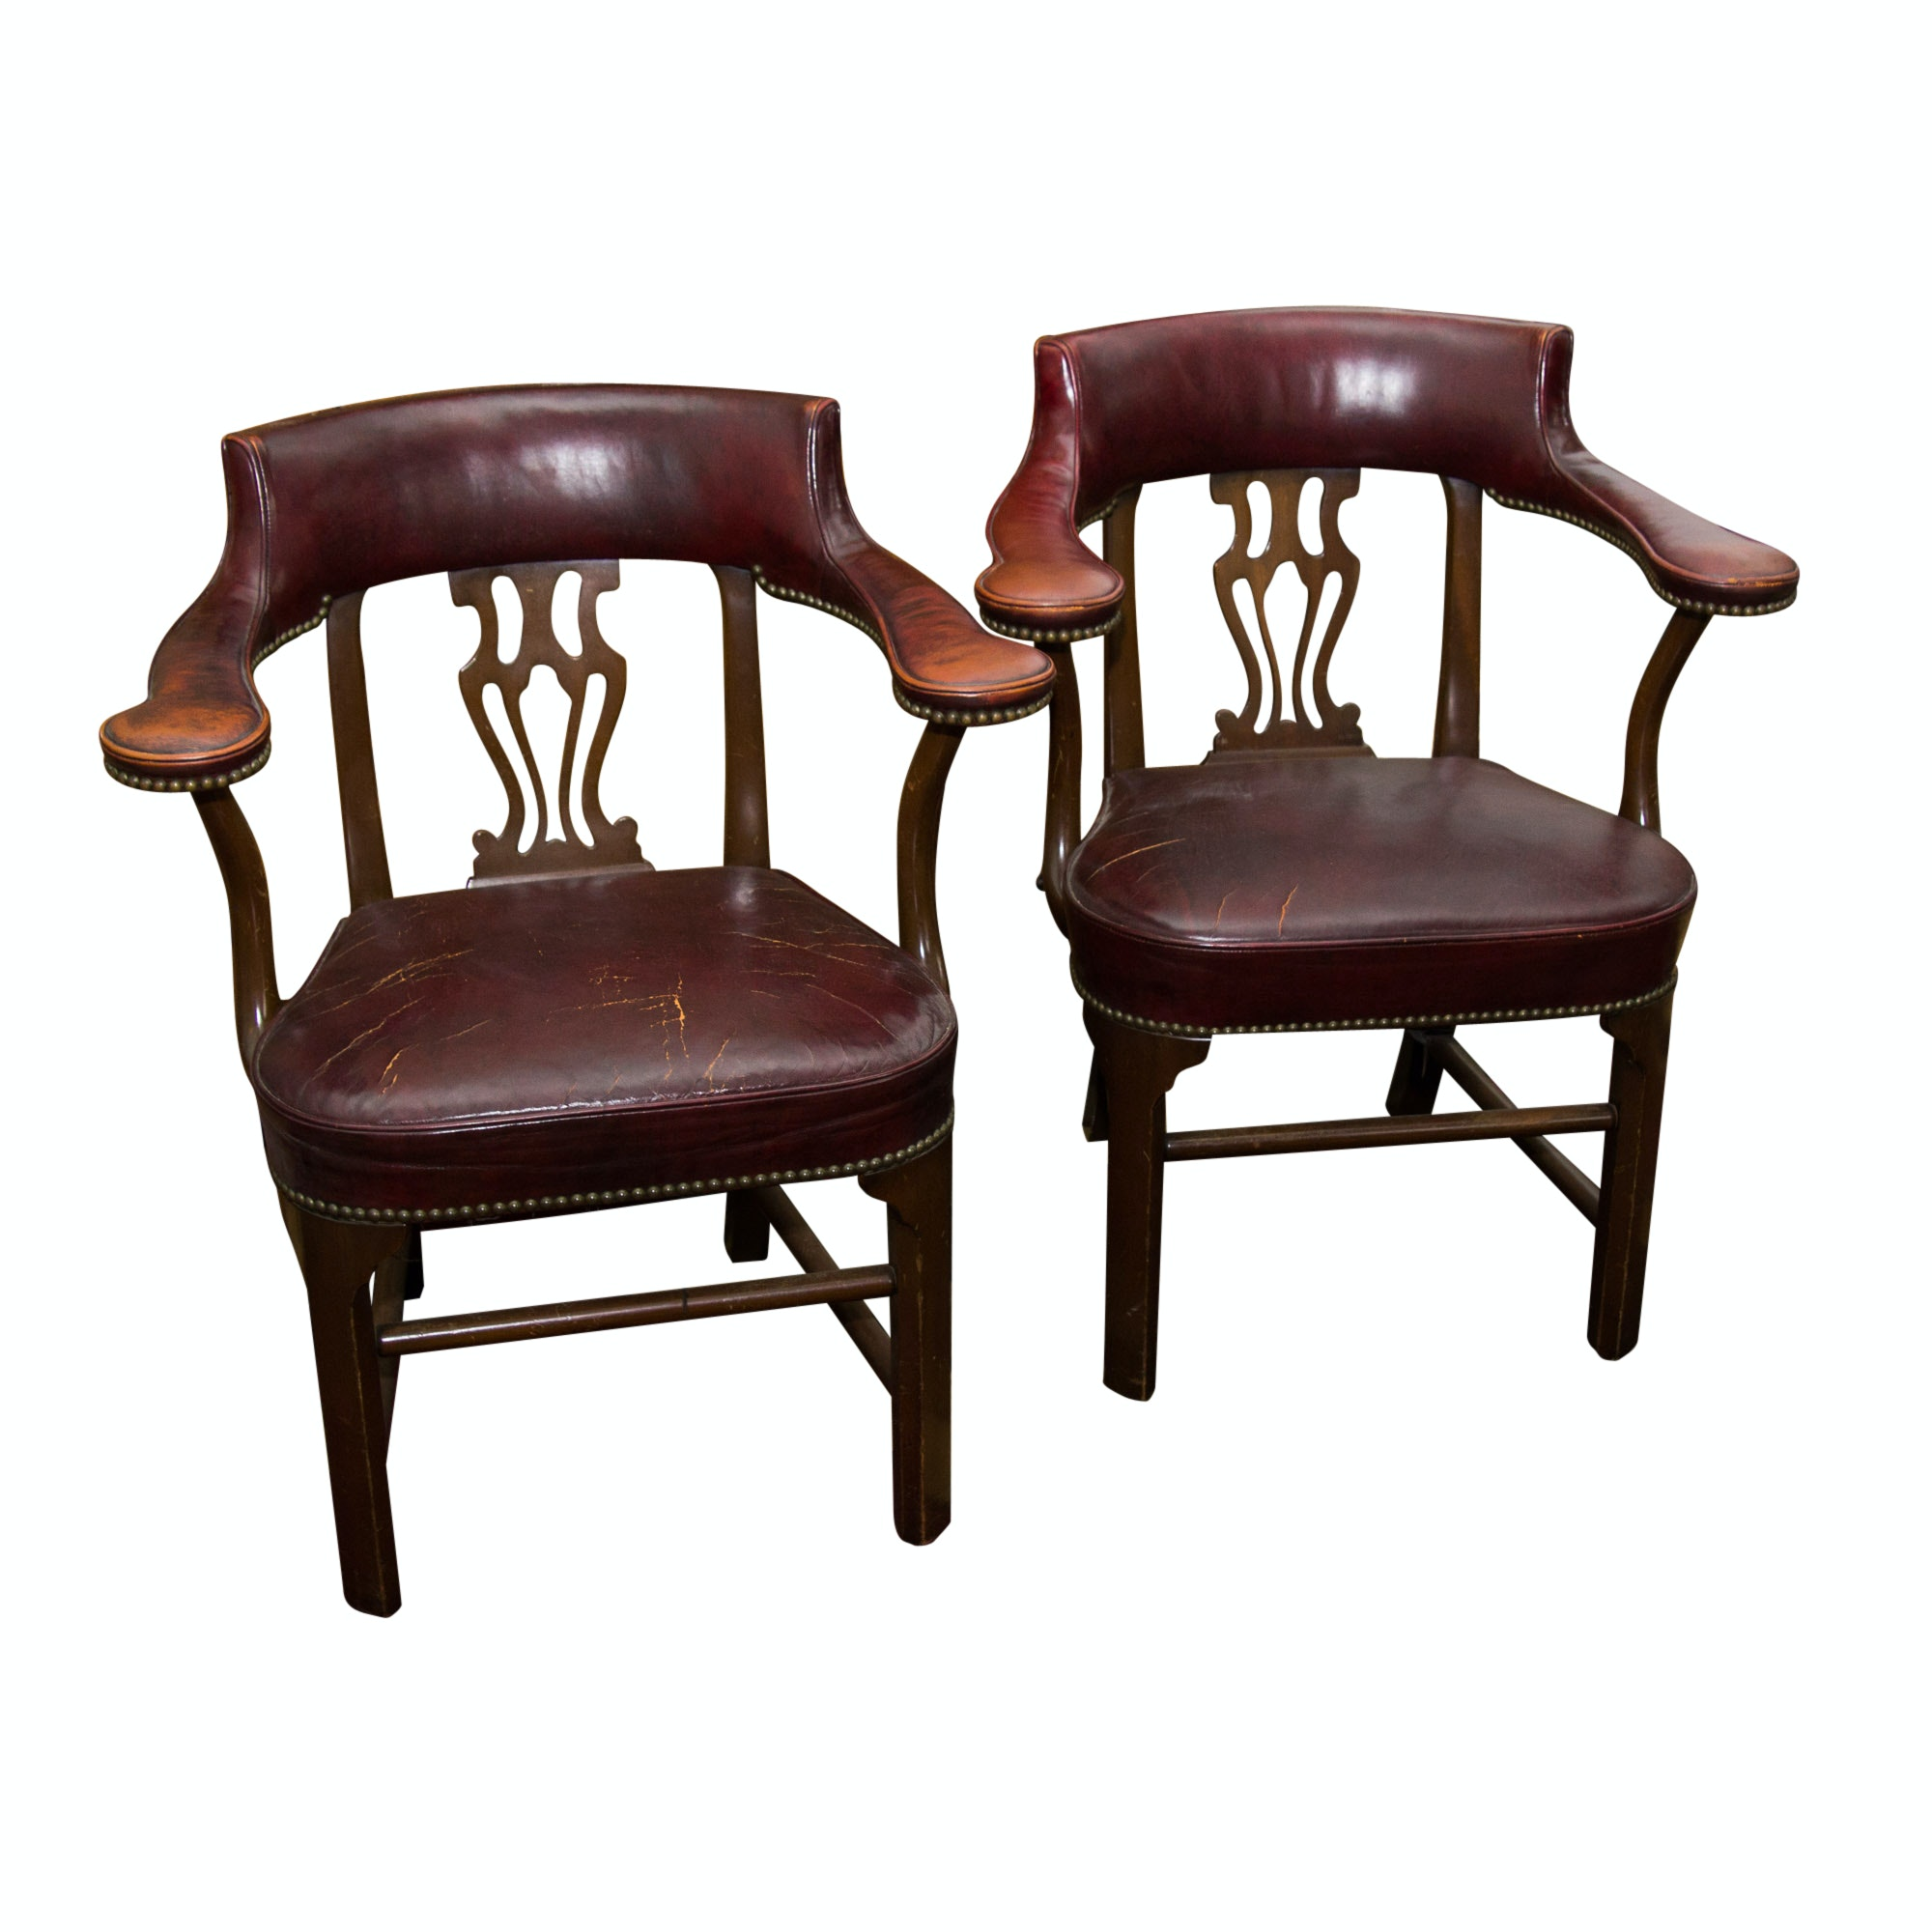 Two Vintage Captain's Chairs